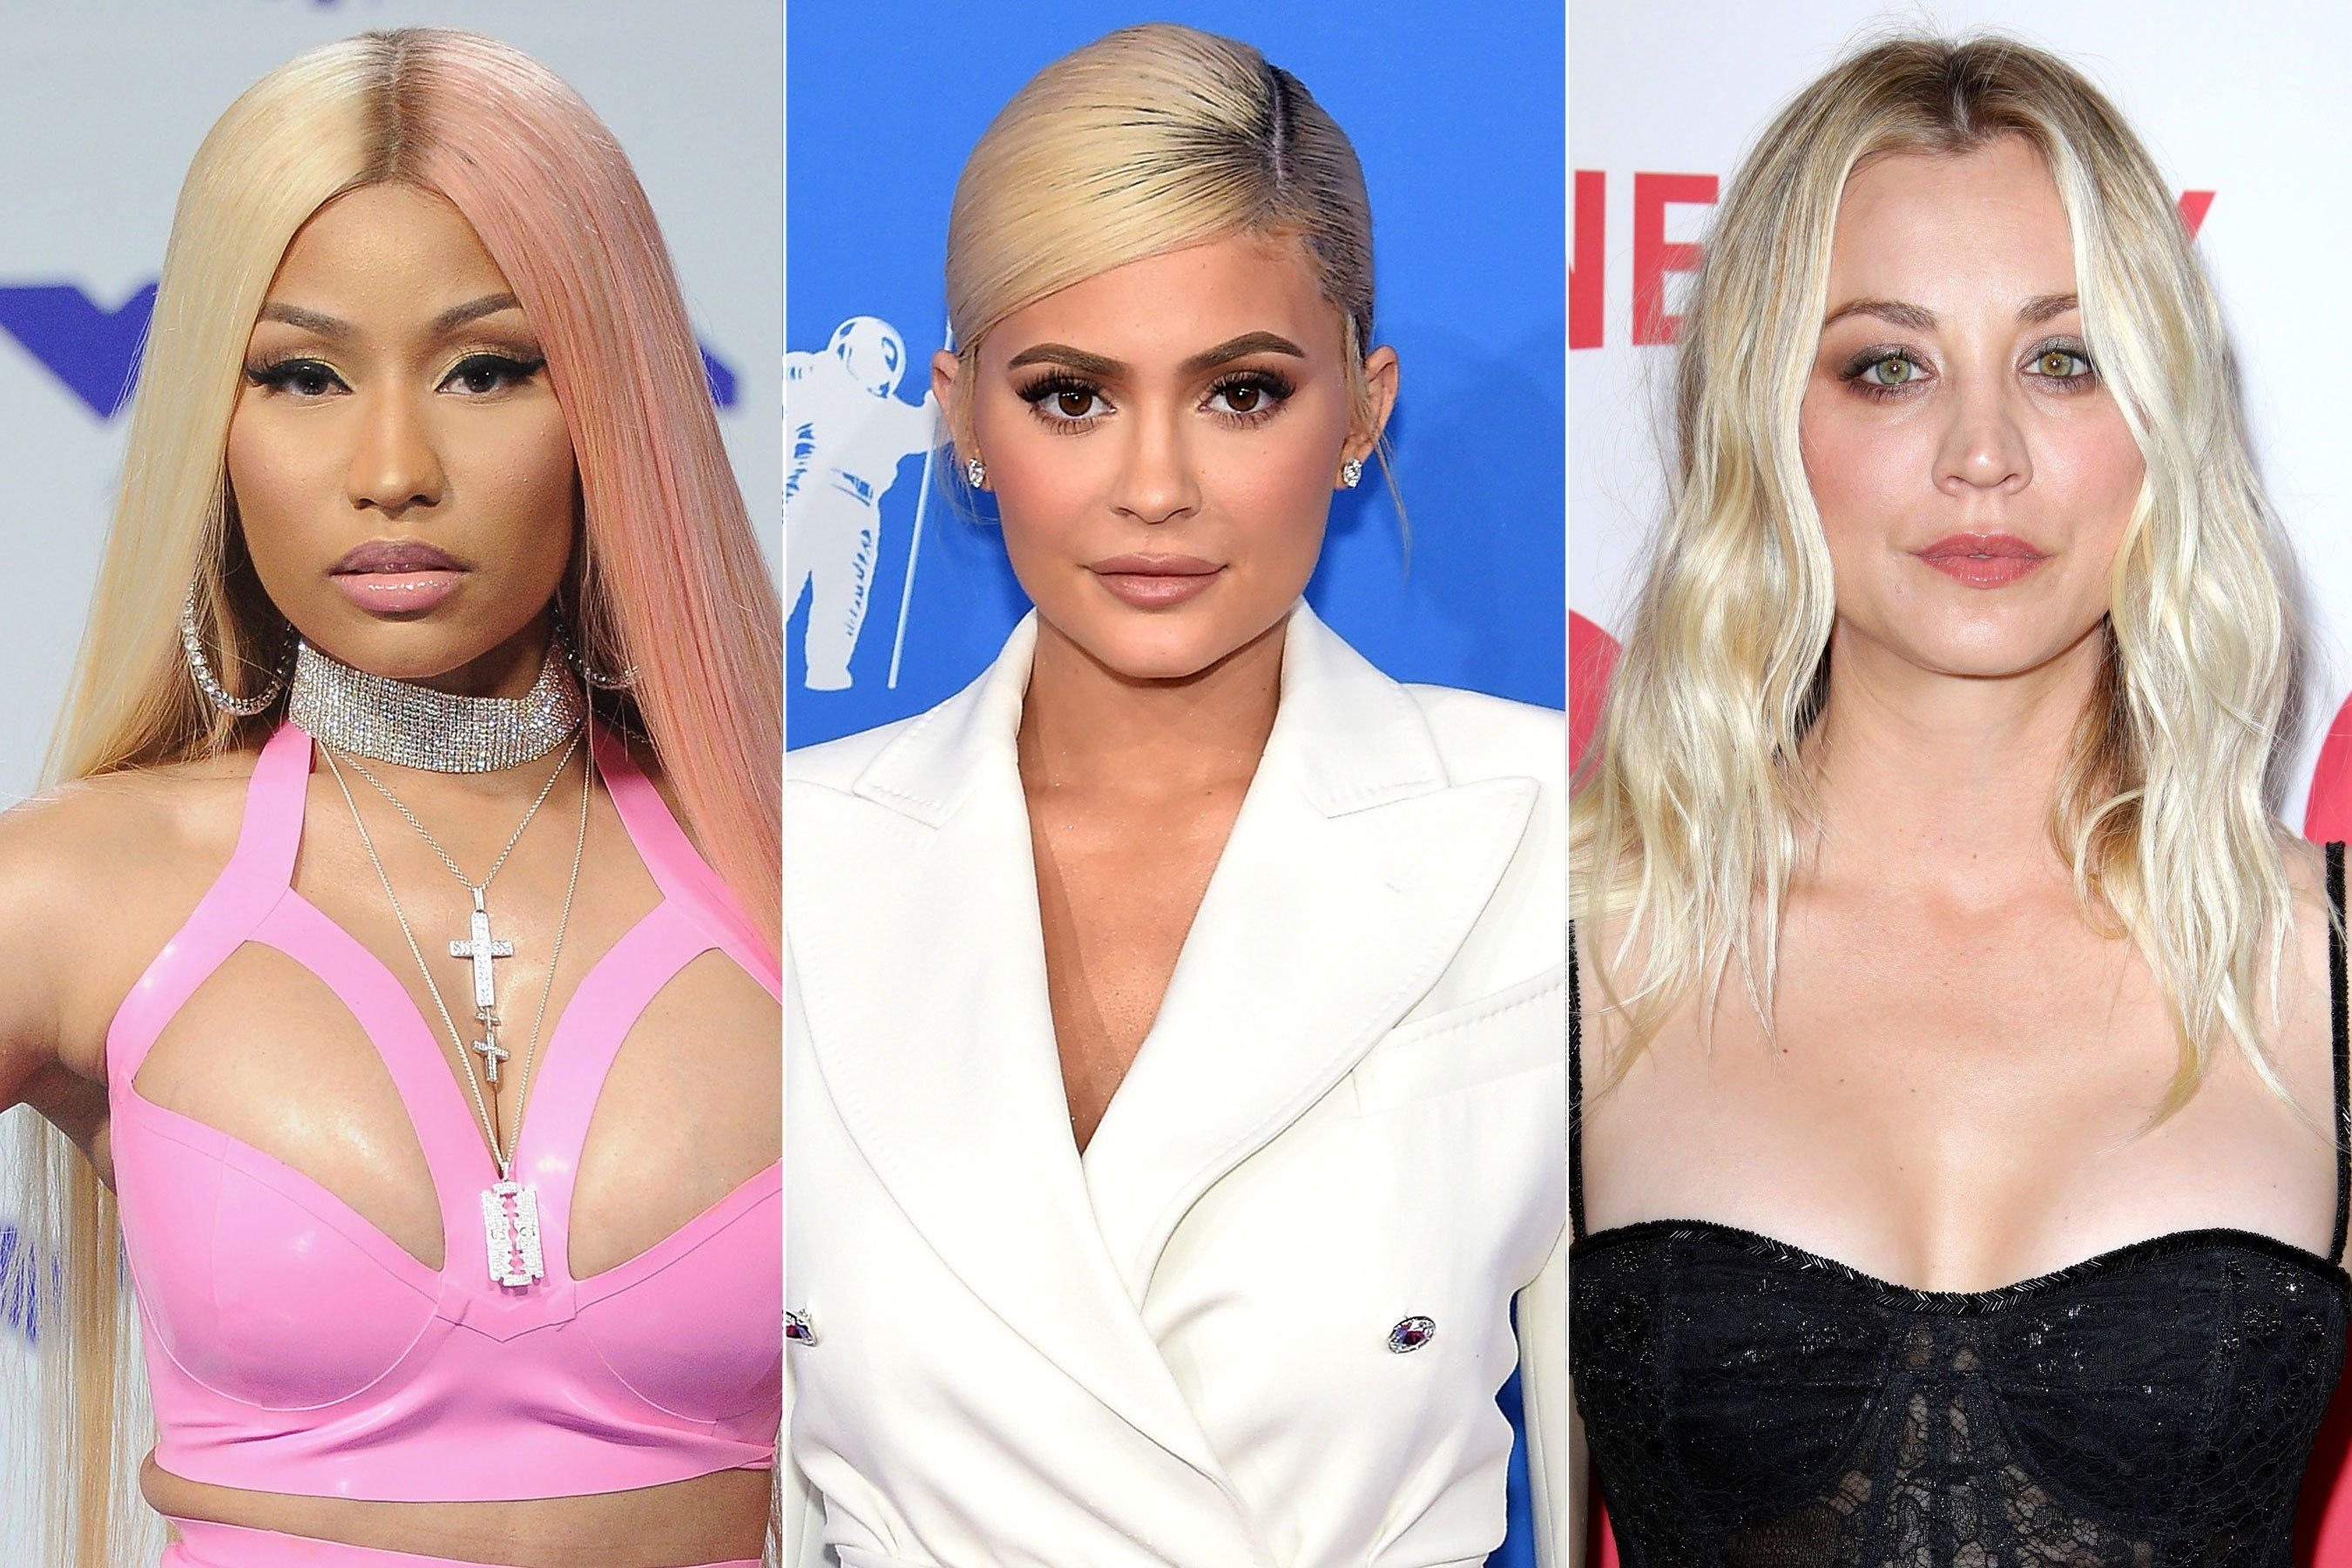 Kylie Jenner & More Celebs React to Southern California's Biggest Earthquake in Nearly 20 Years